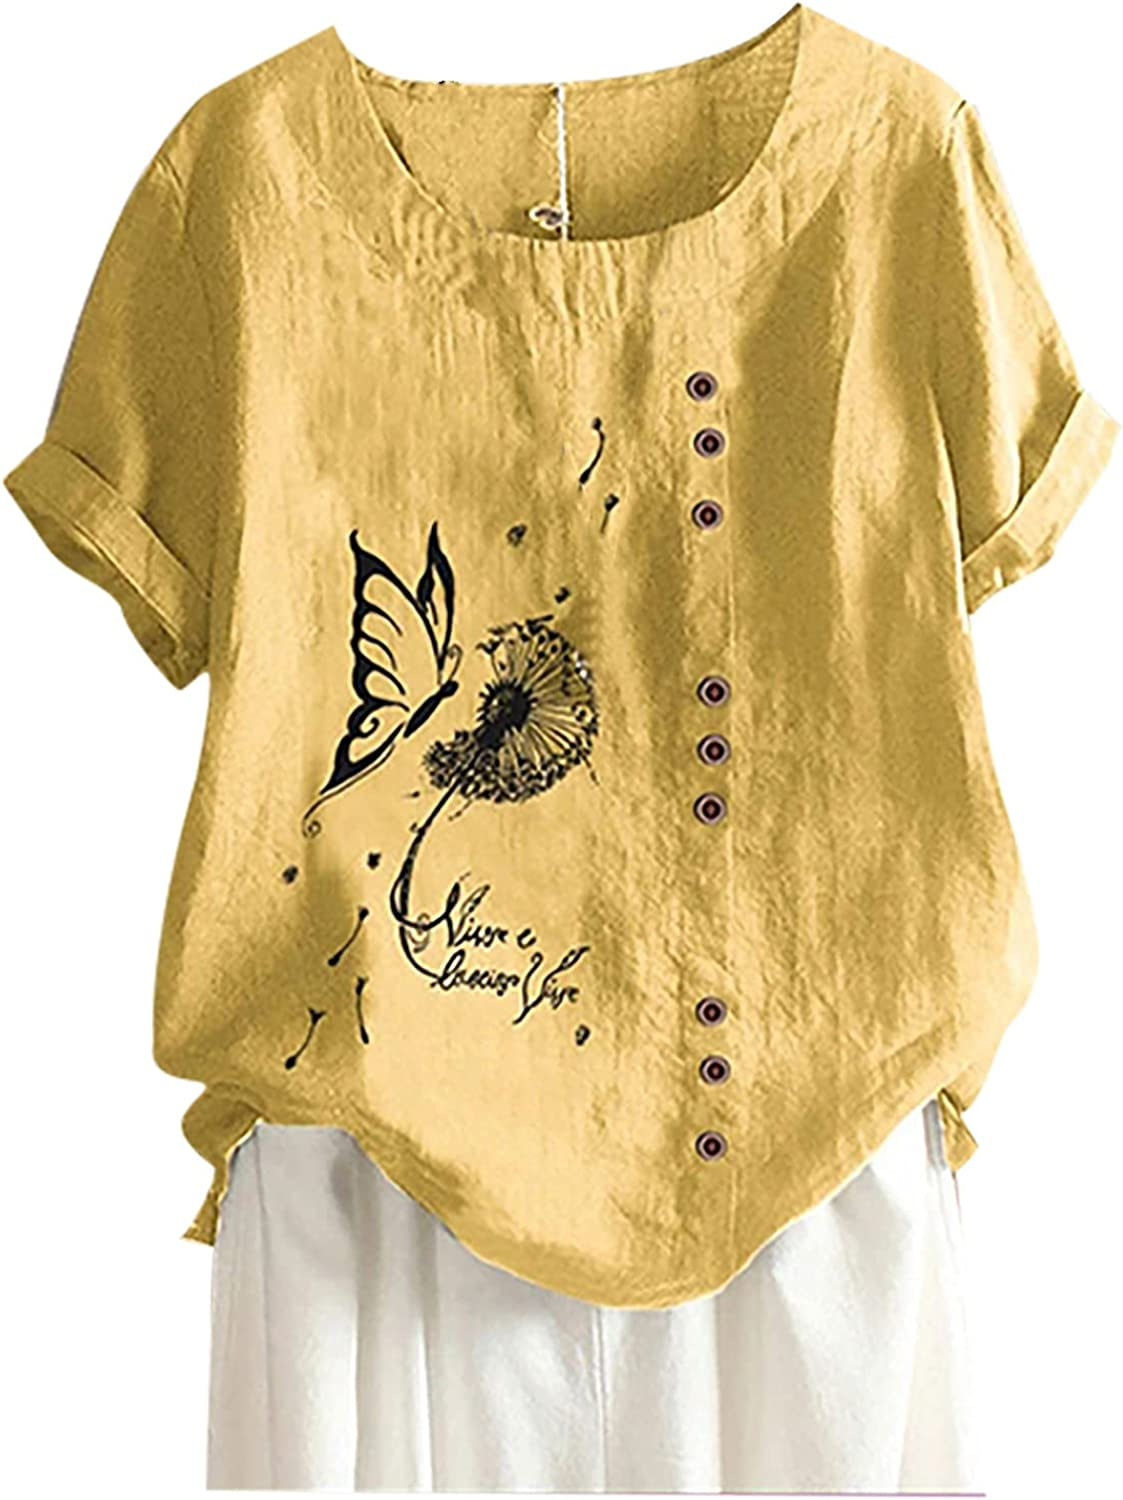 Women's Plus Size Cotton Linen Tops Summer O-Neck Short Sleeve Butterfly Printed Loose Shirt Tops Blouse